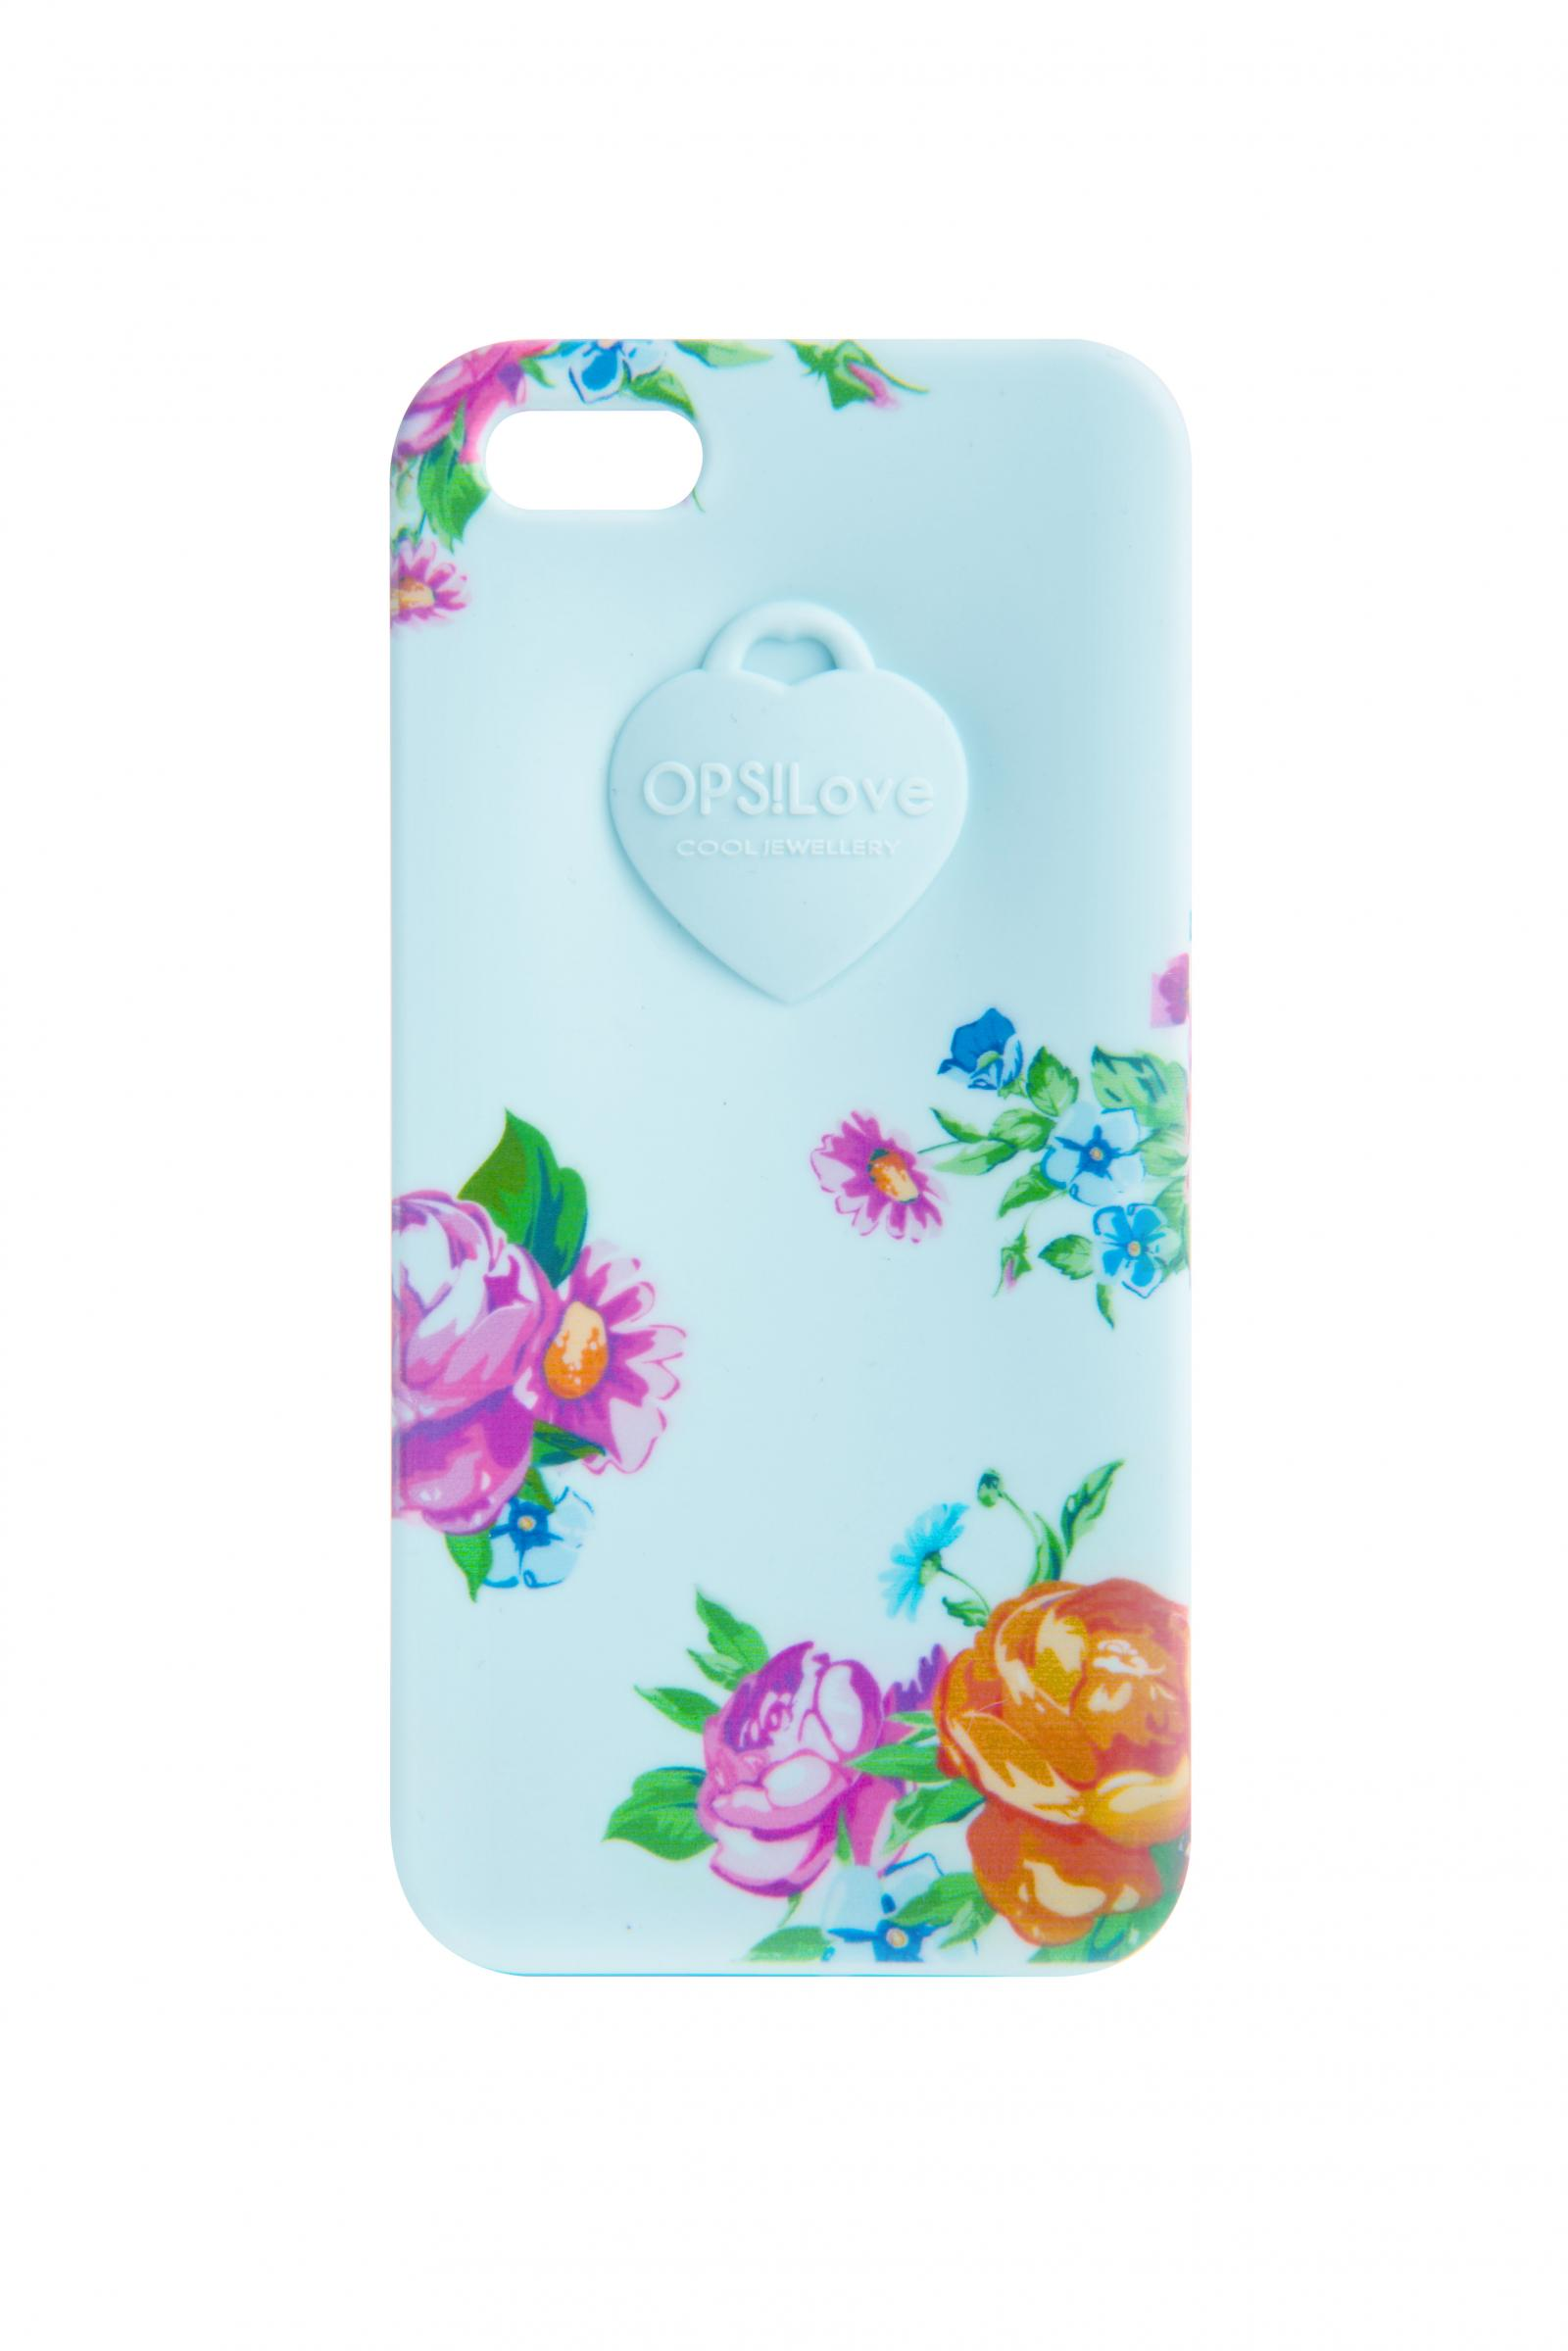 Etui iPhone 5/5C/5S